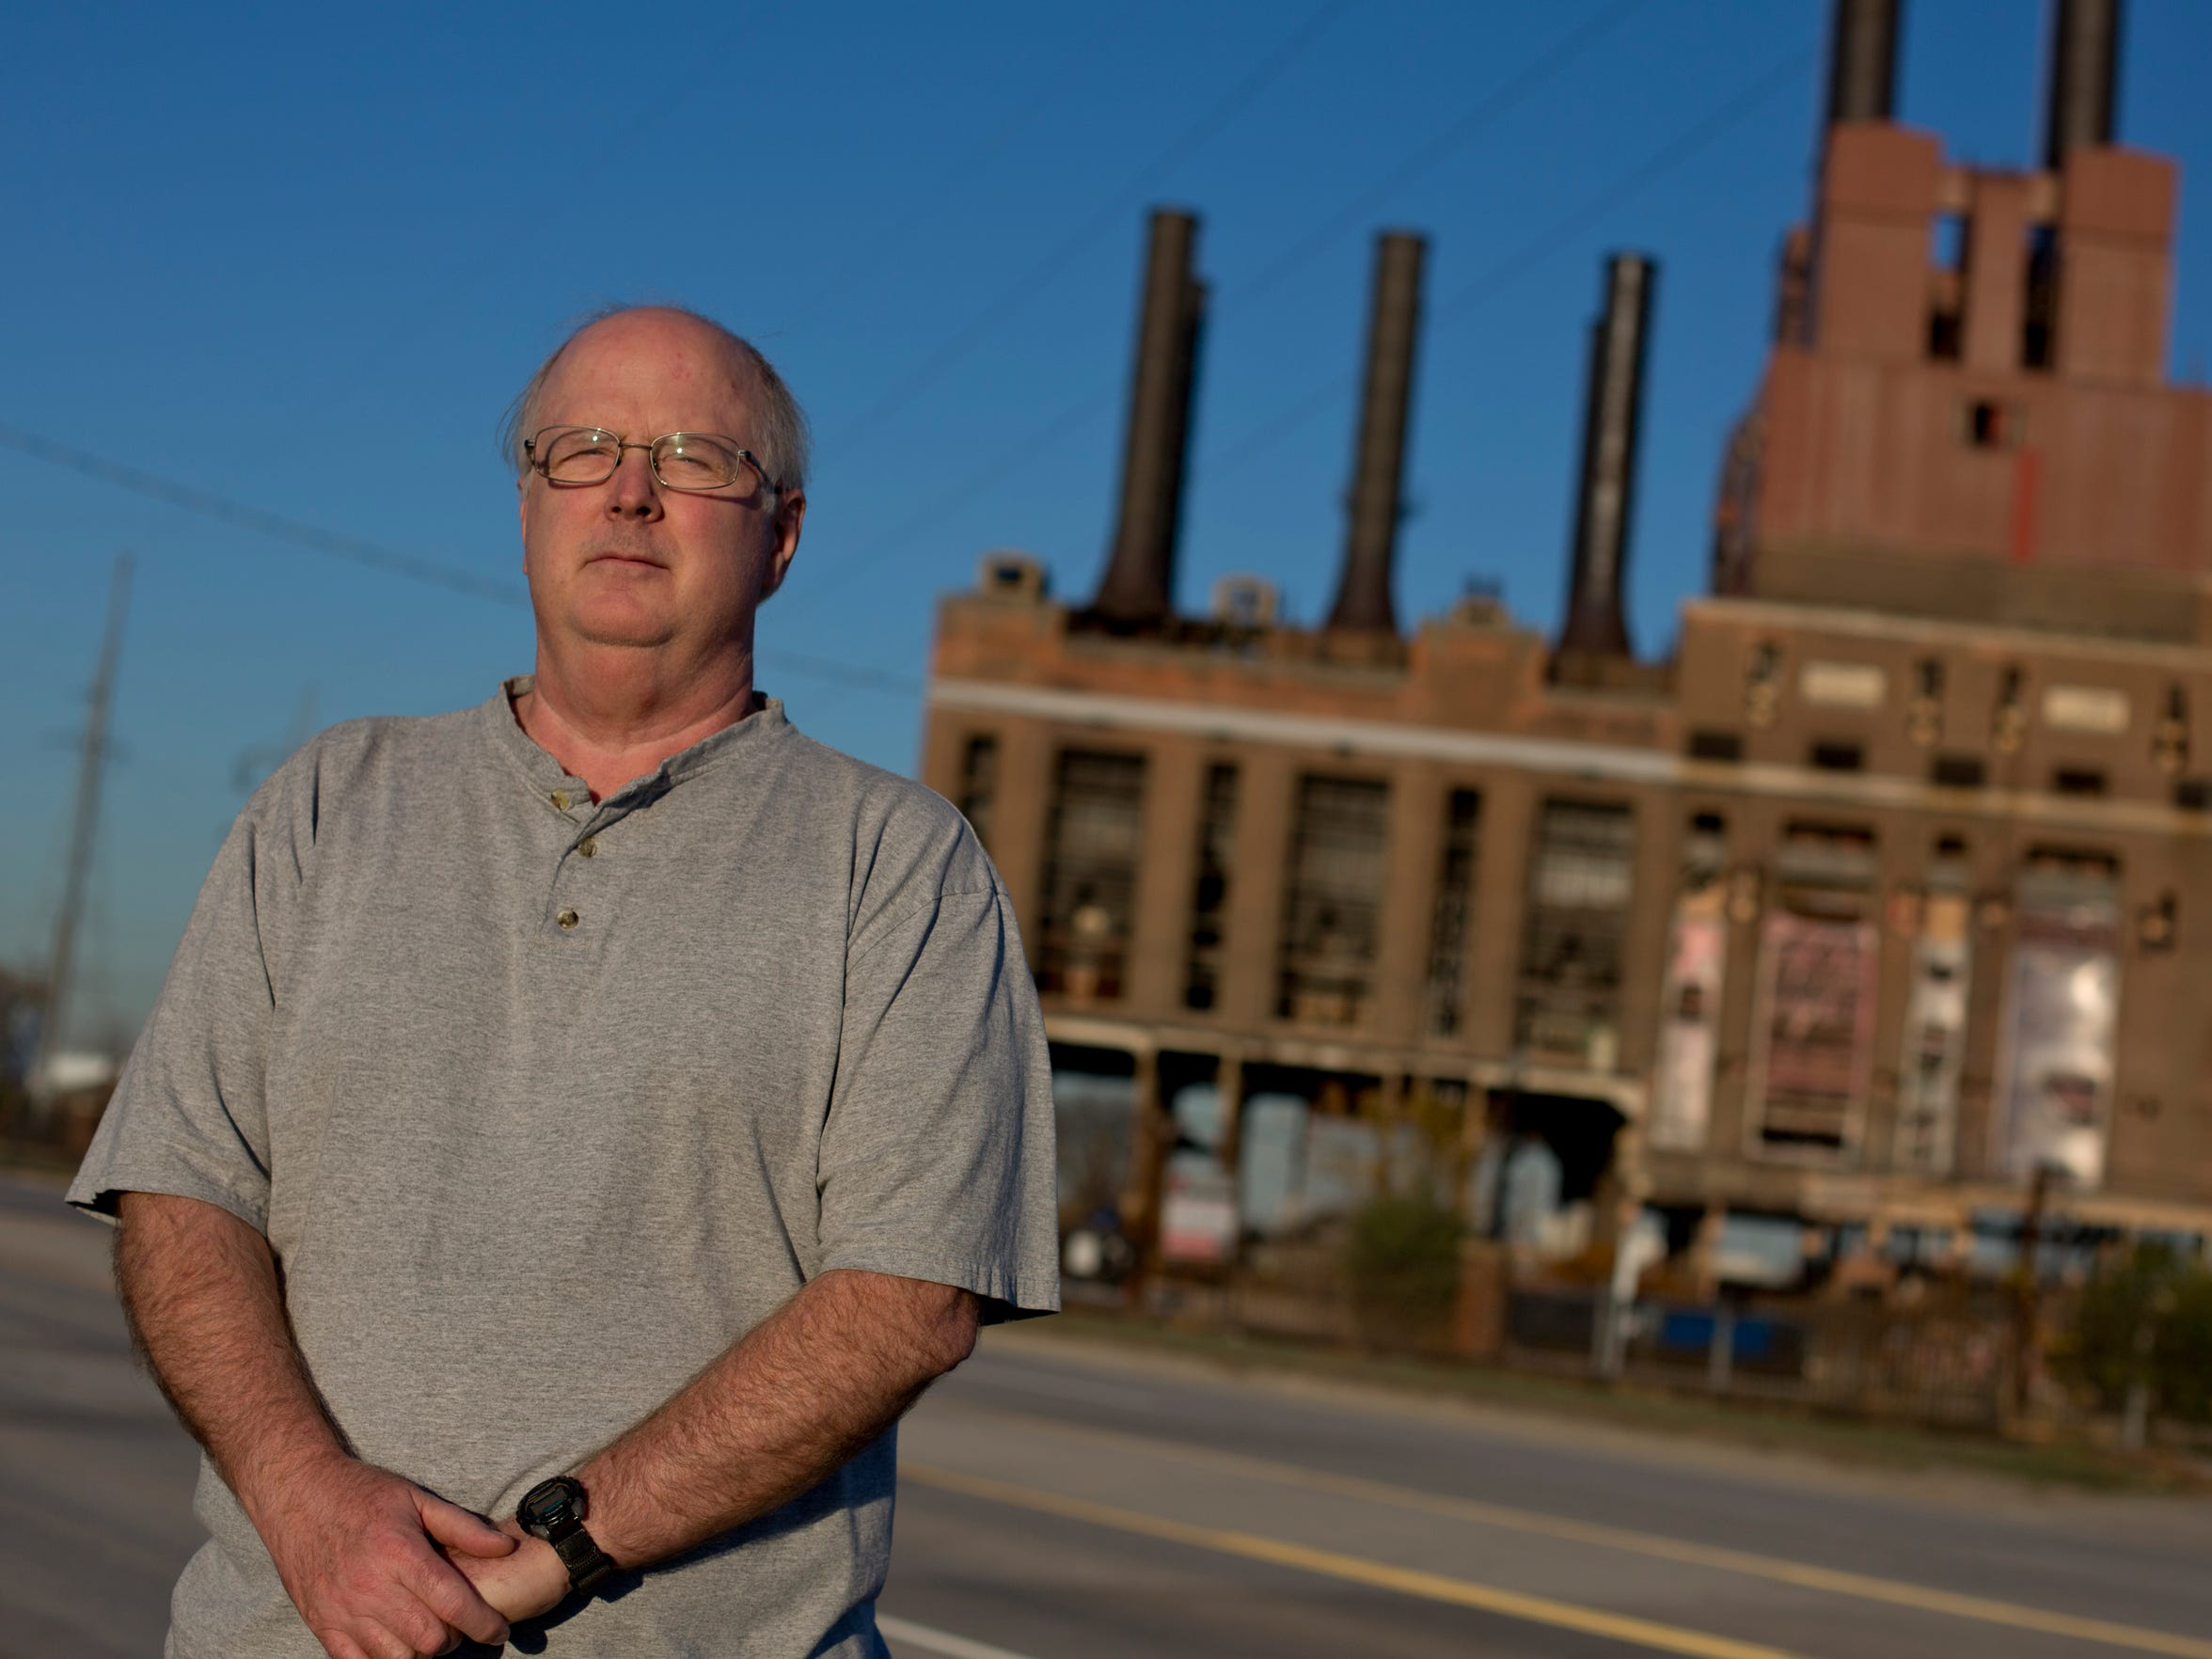 Former DTE Power Plant Operator Terry Bergstrom pictured